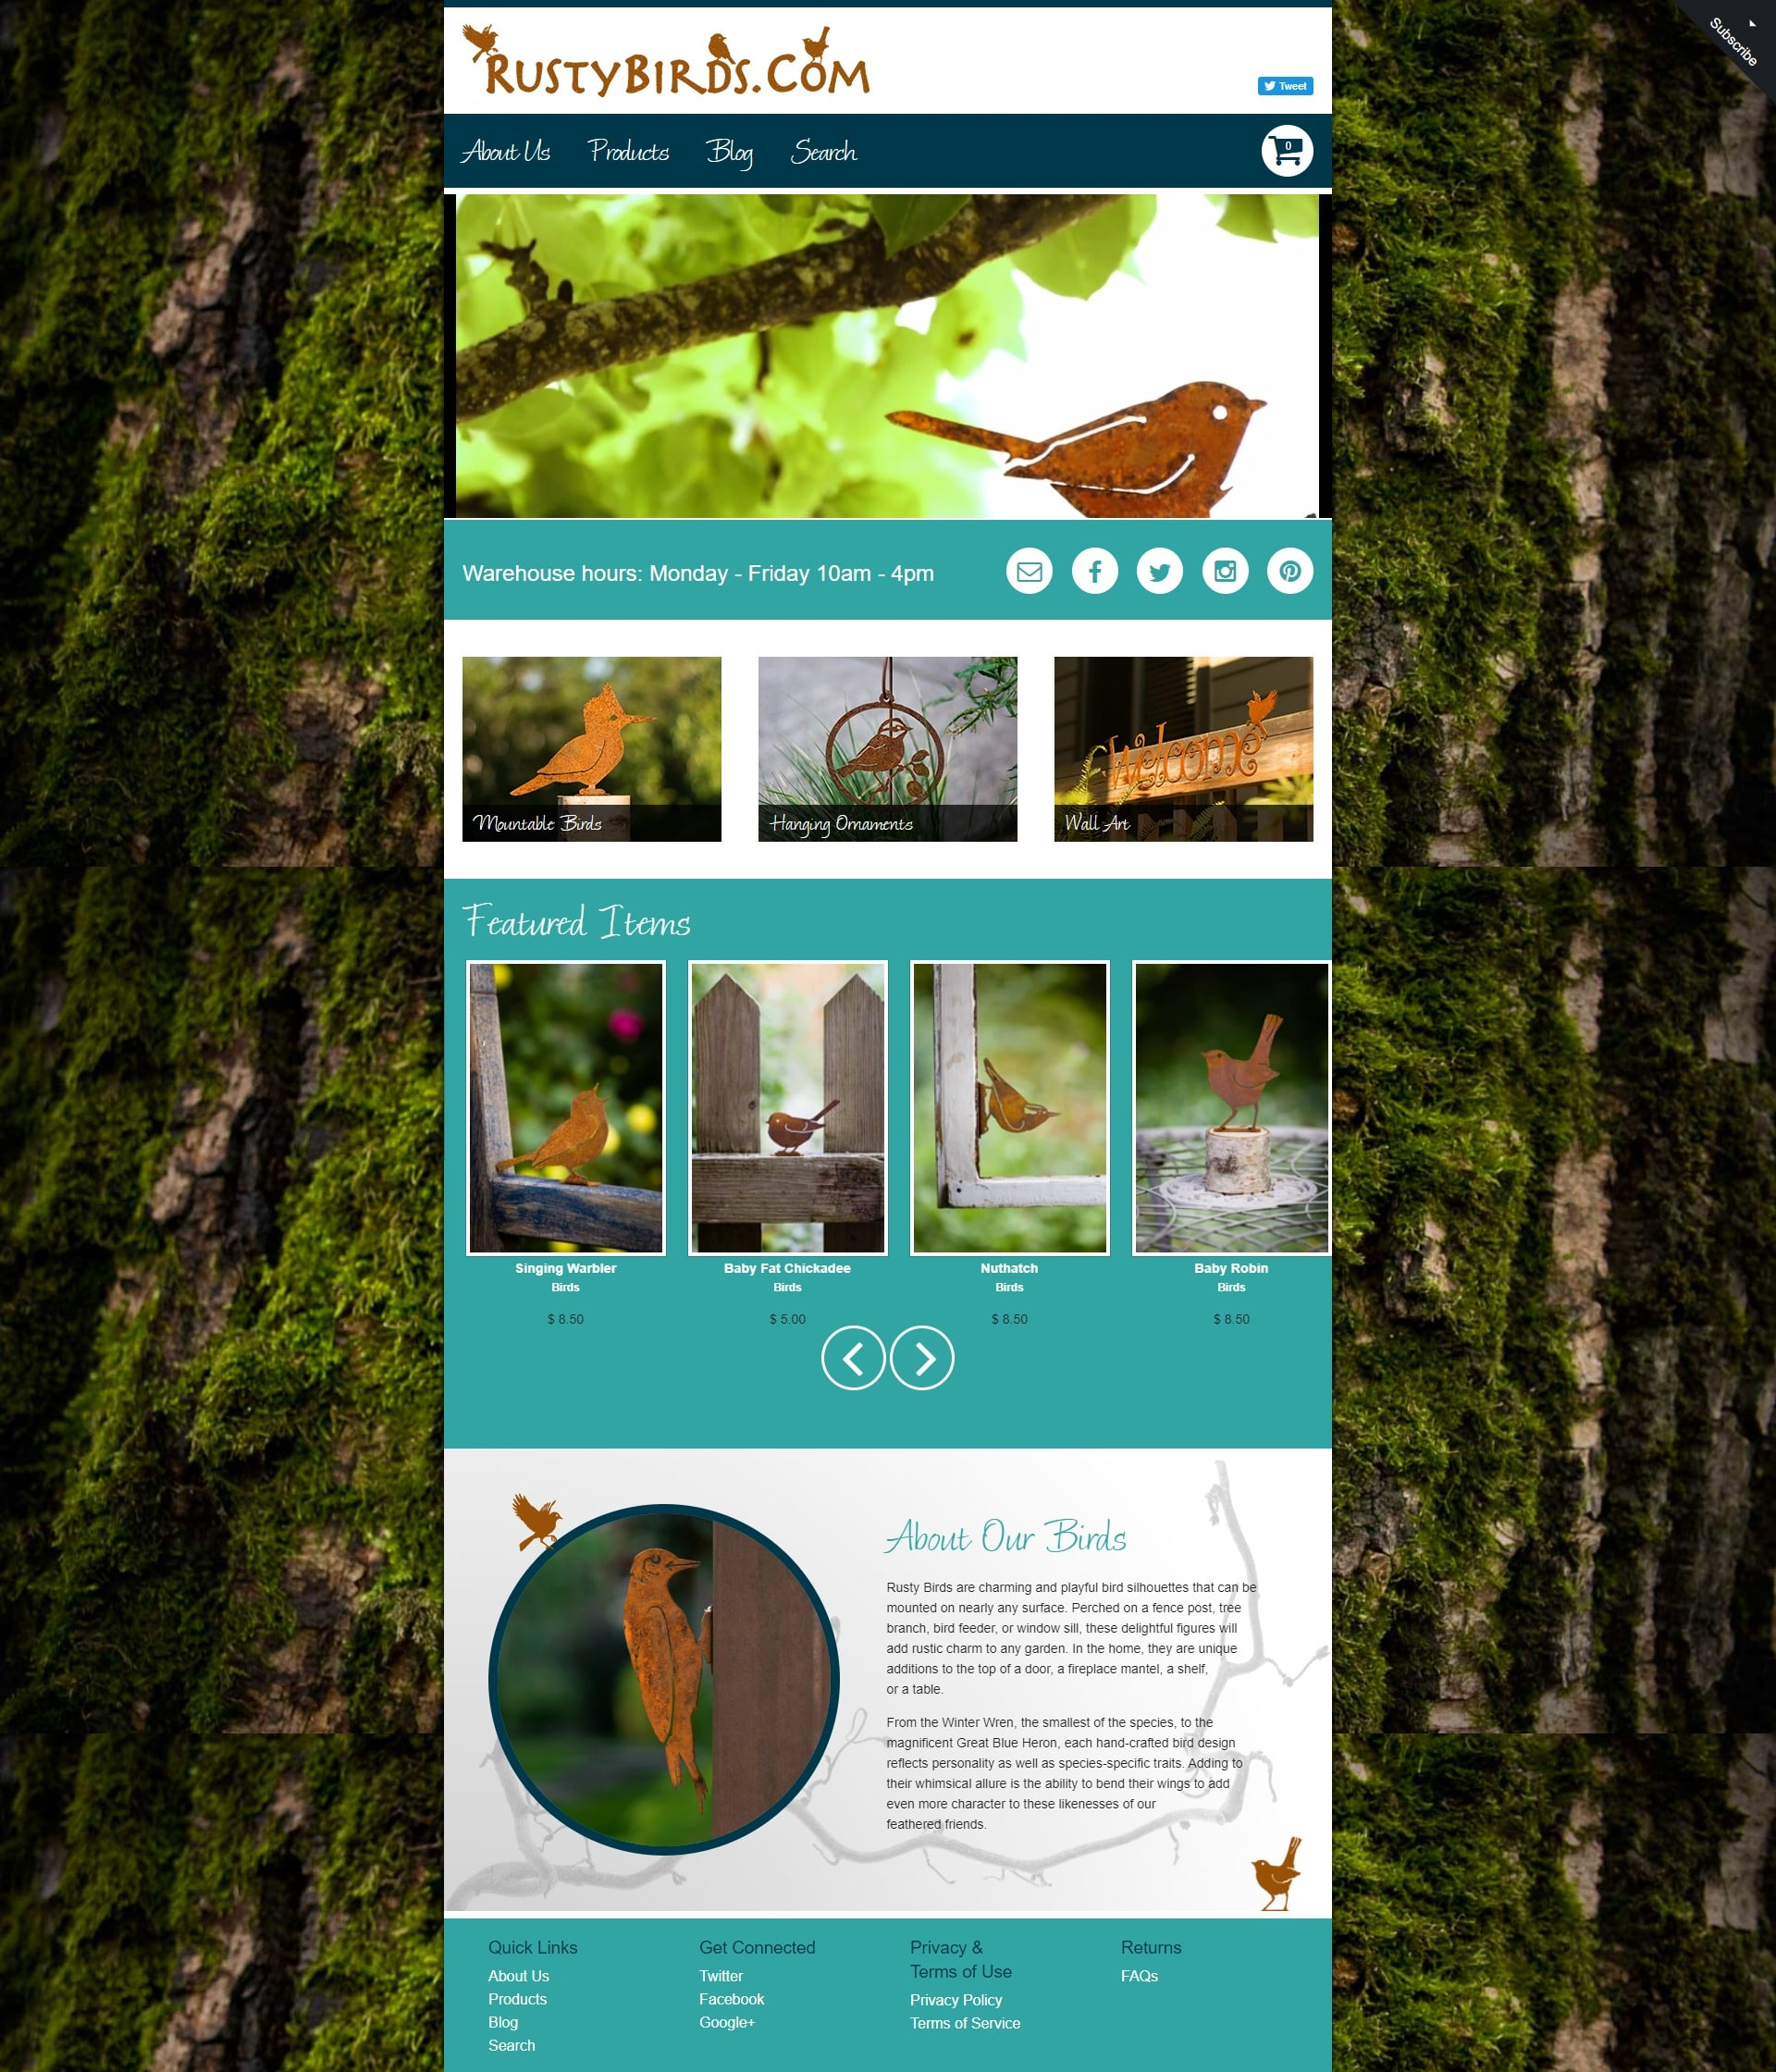 Rusty Birds website redesign by Suffolk County Webmasters